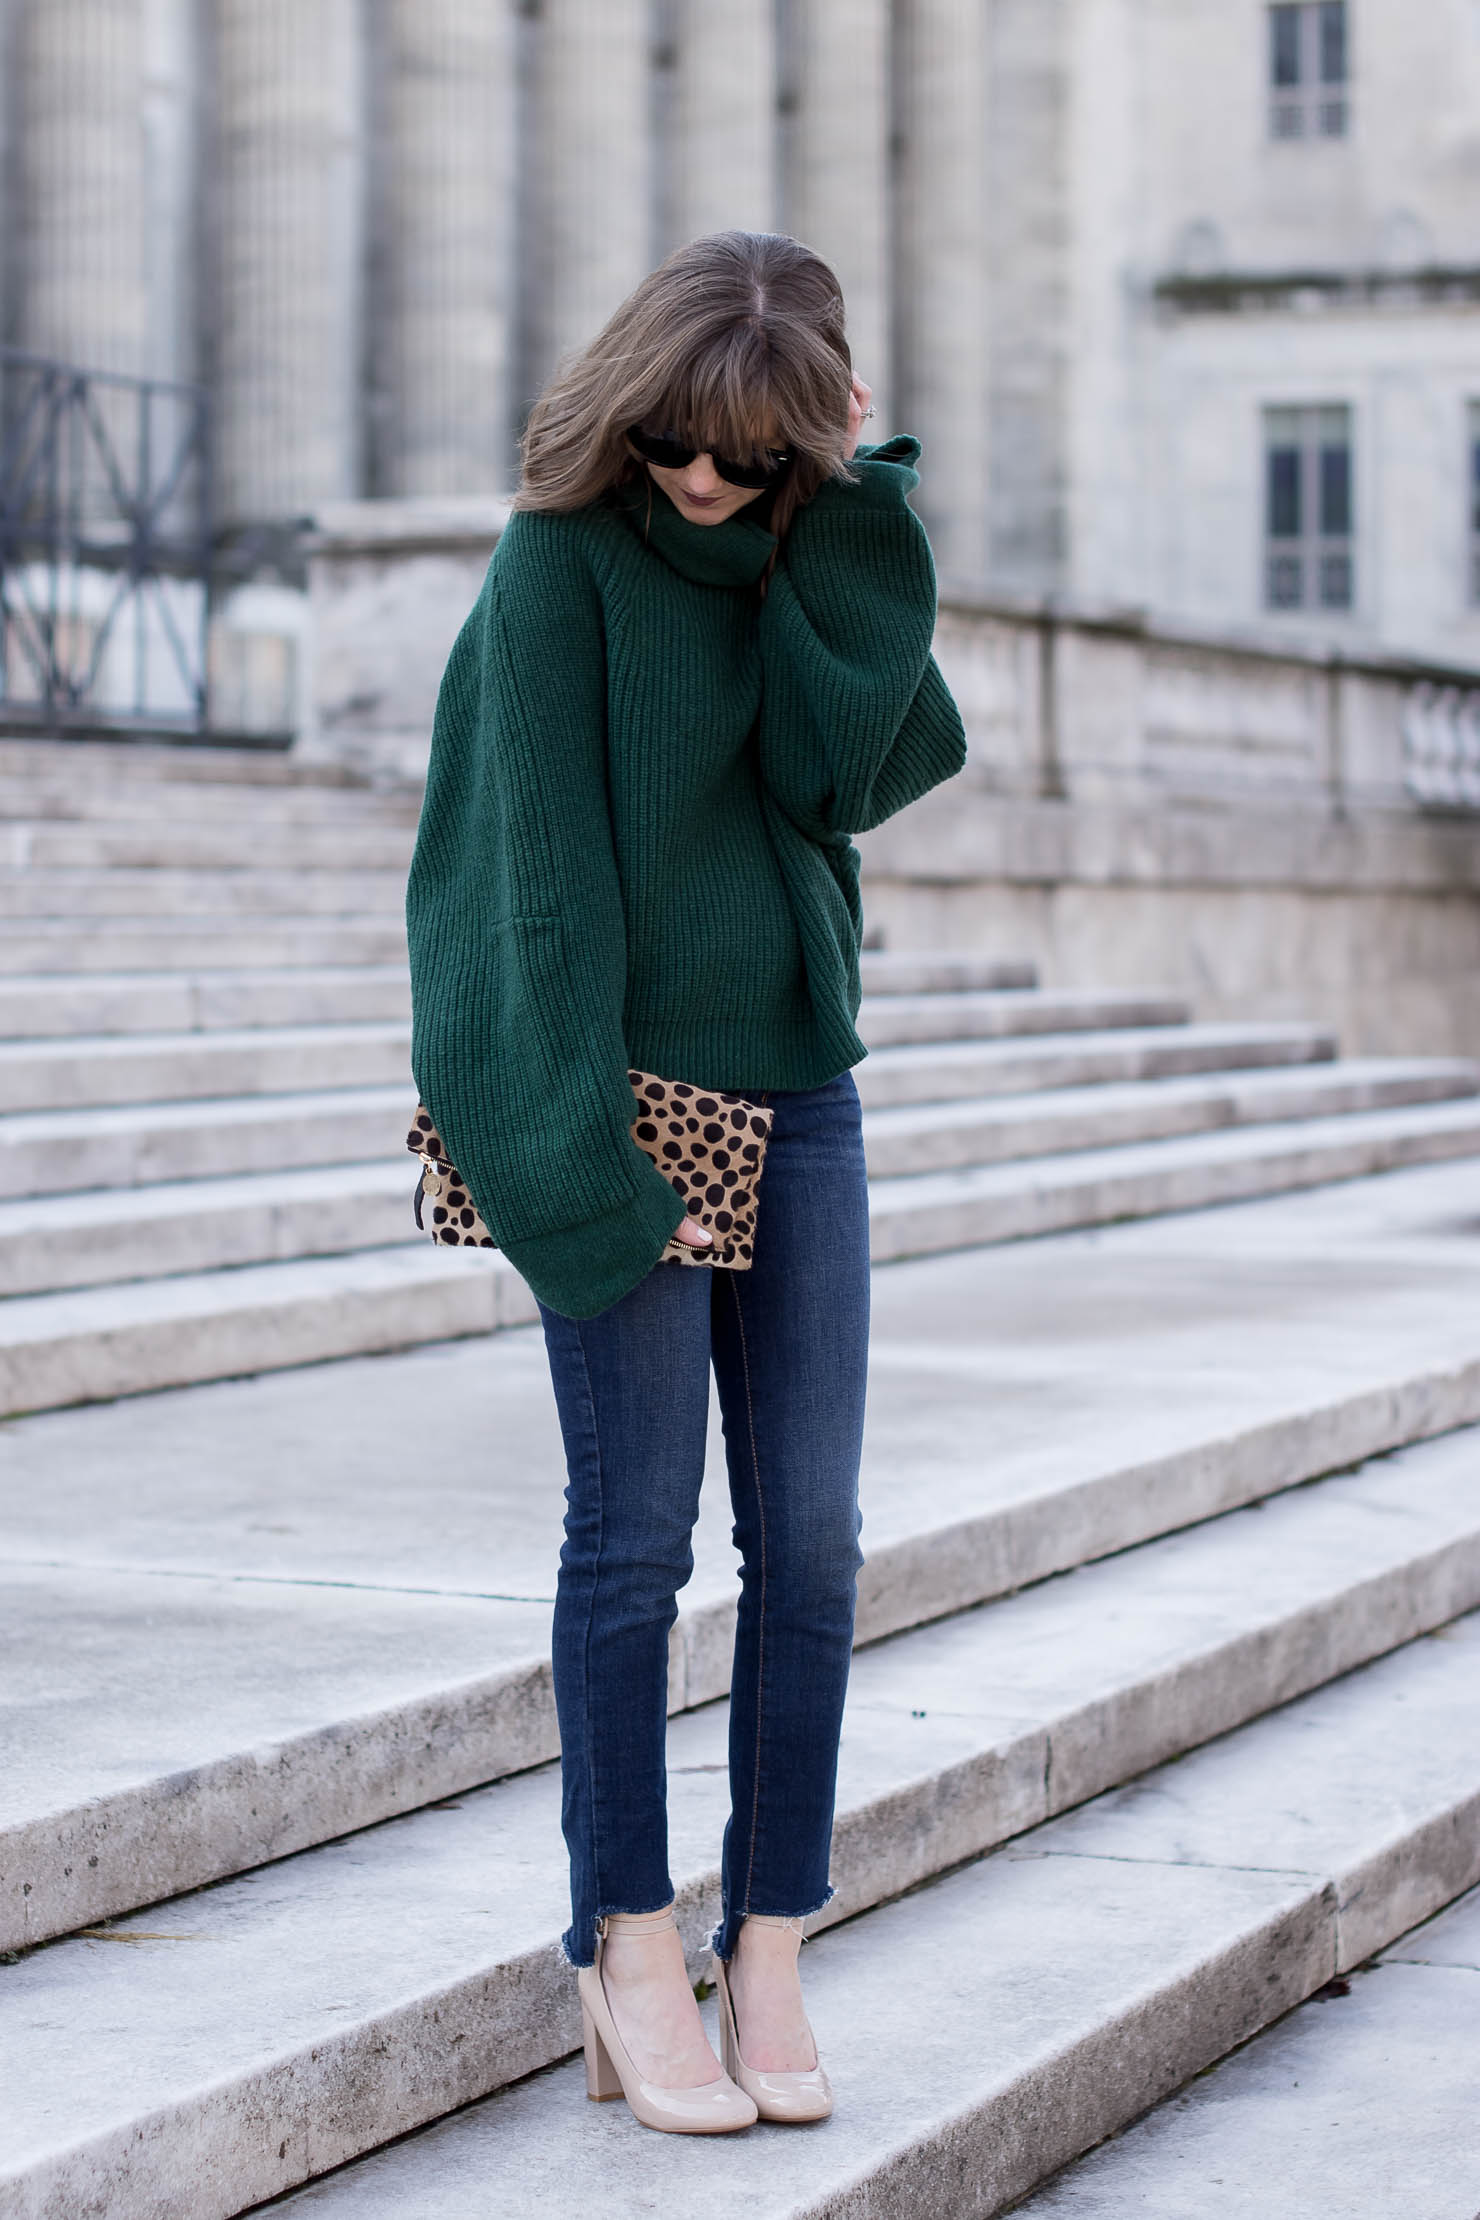 283d8563fb539 My Love of Oversized Sweaters - Wishes   Reality